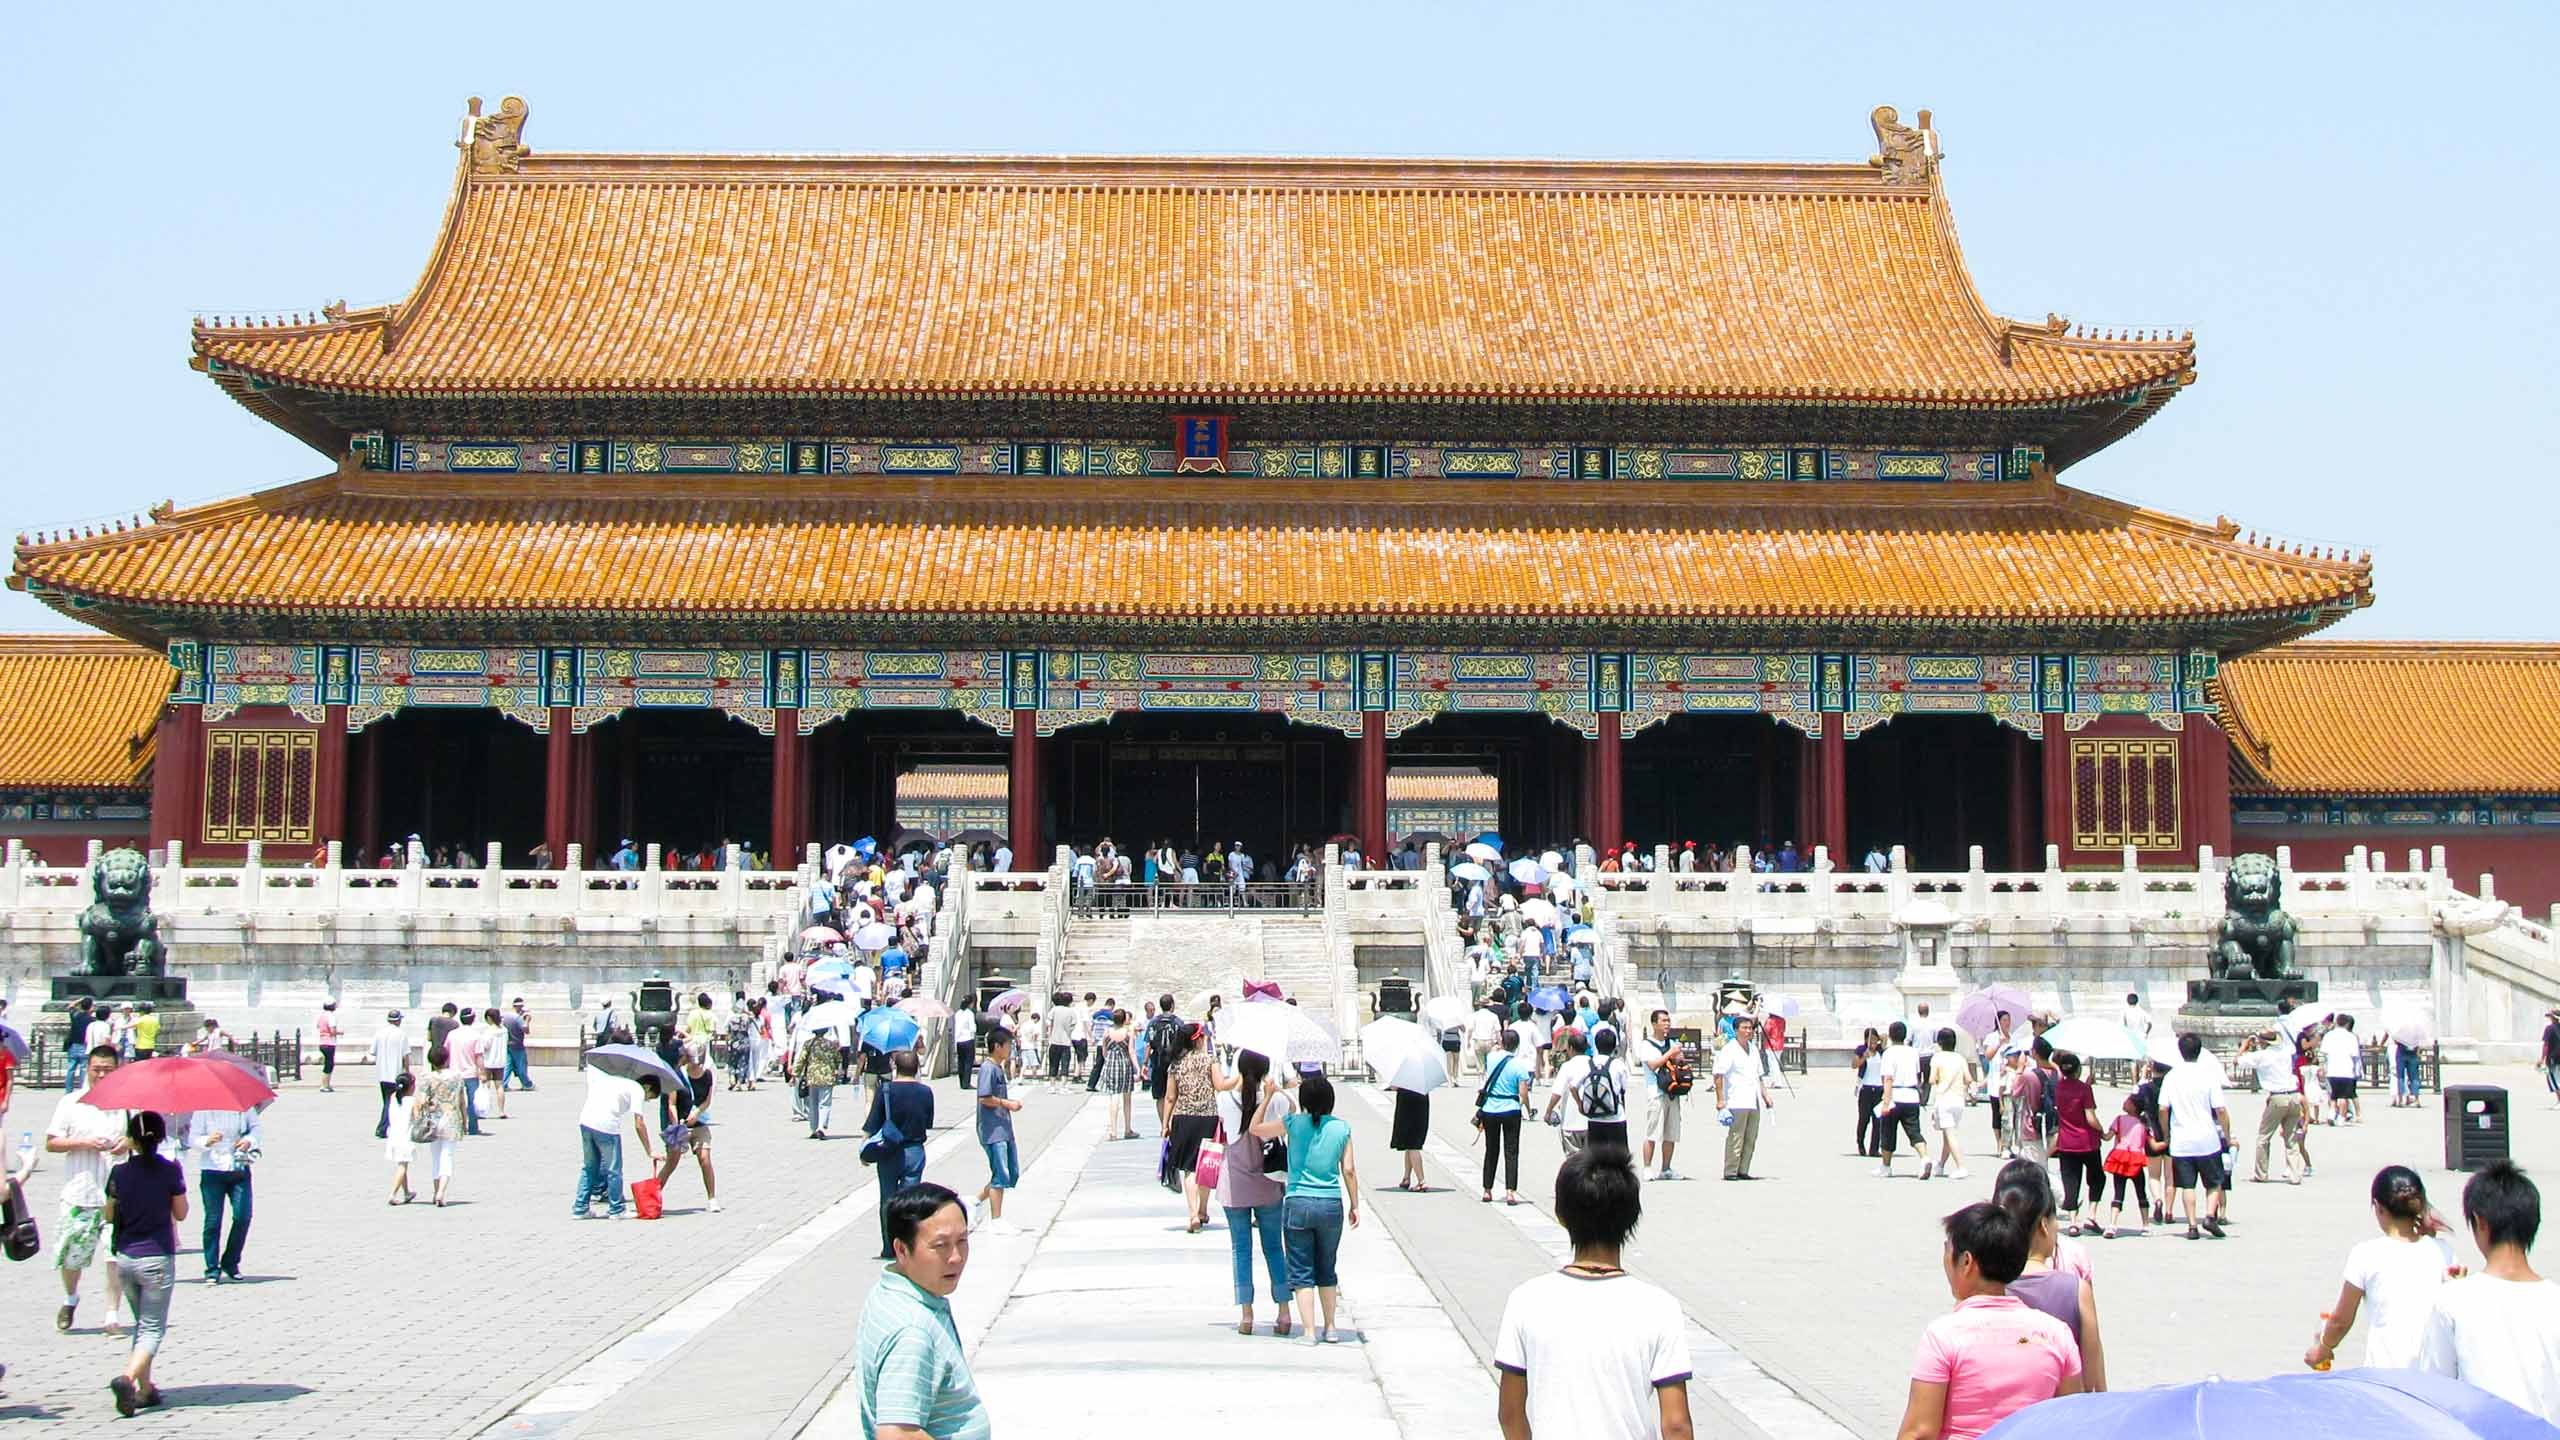 Travelers wander around China palace plaza